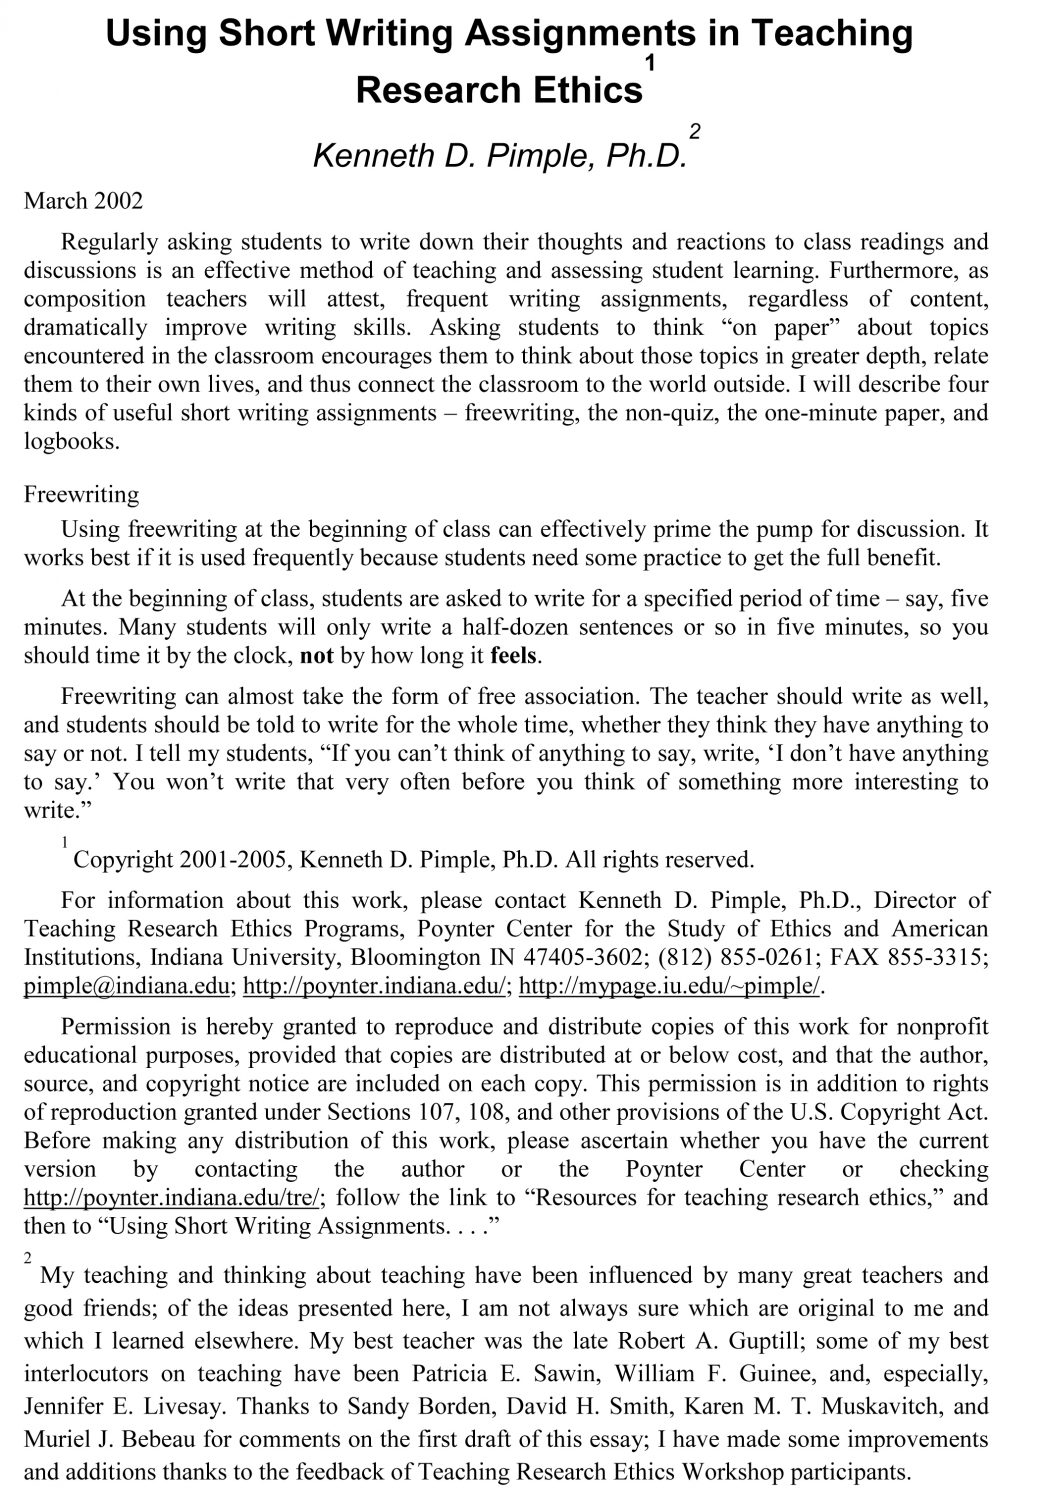 005 Why Do You Want To Teacher Essay Example I Become The Journey Is Everything By Sample Tea Writing On My Role Model In Kannada Ideal Telugu Hindi Day Teachers Impressive Be A Pdf Would Full